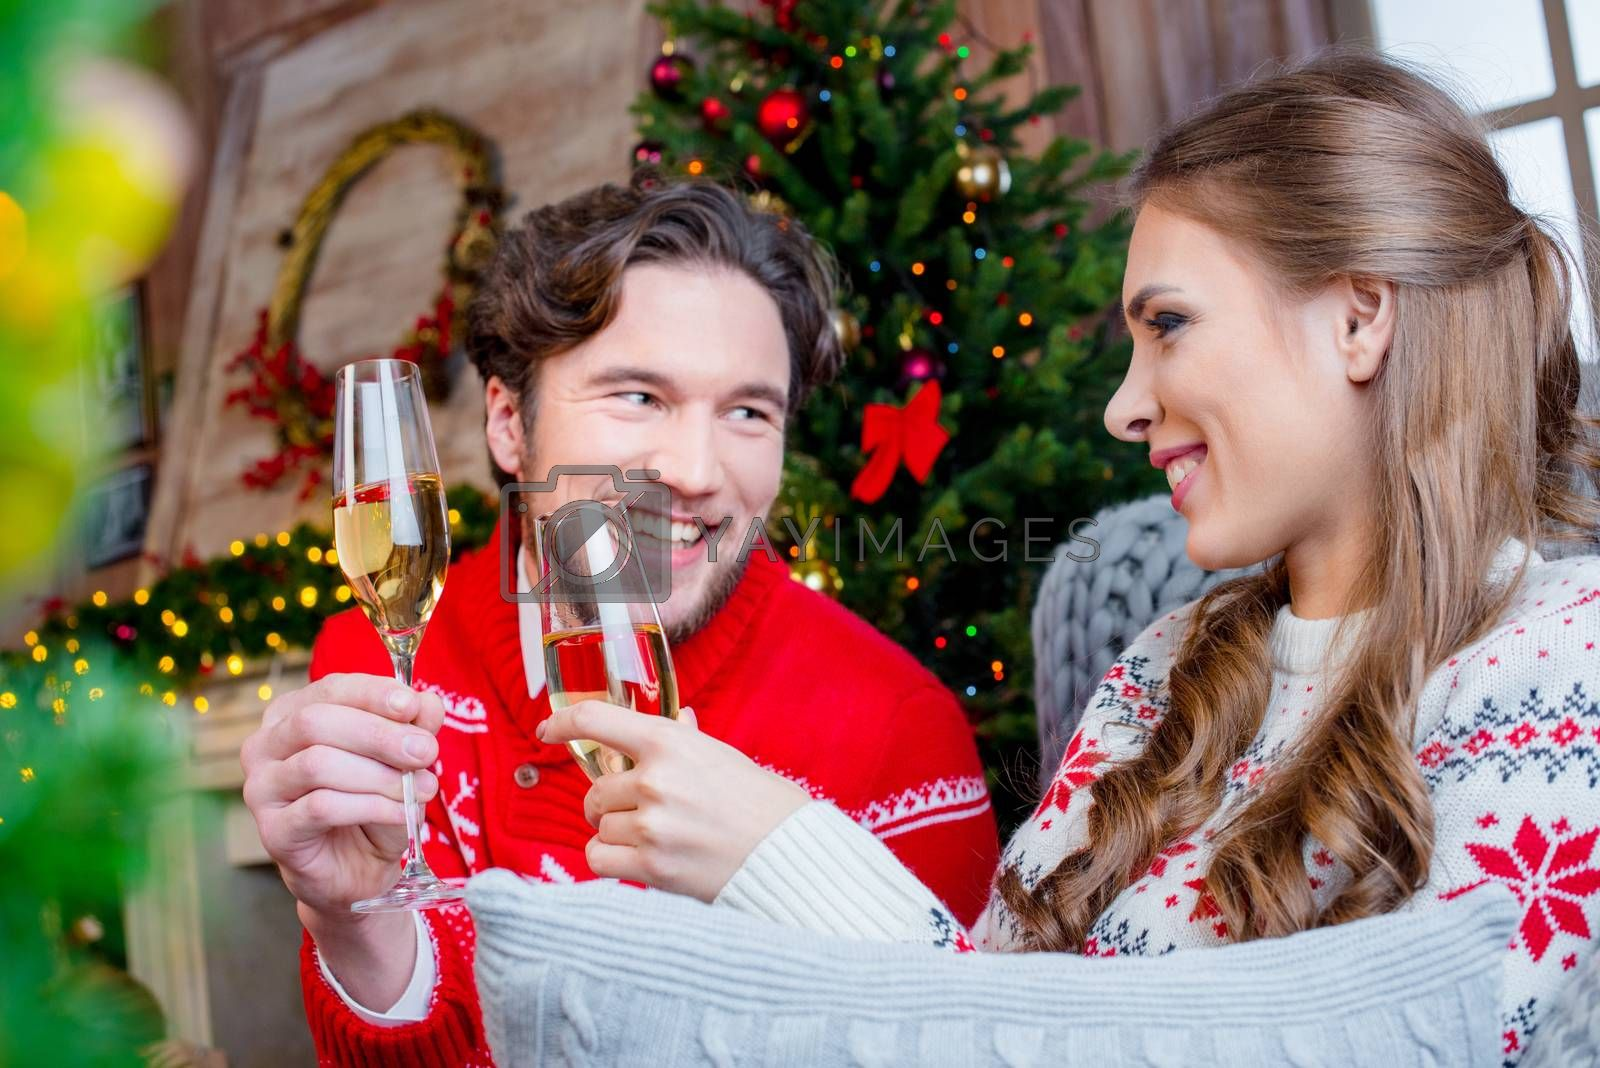 Happy couple looking at each other and toasting with champagne glasses at christmastime